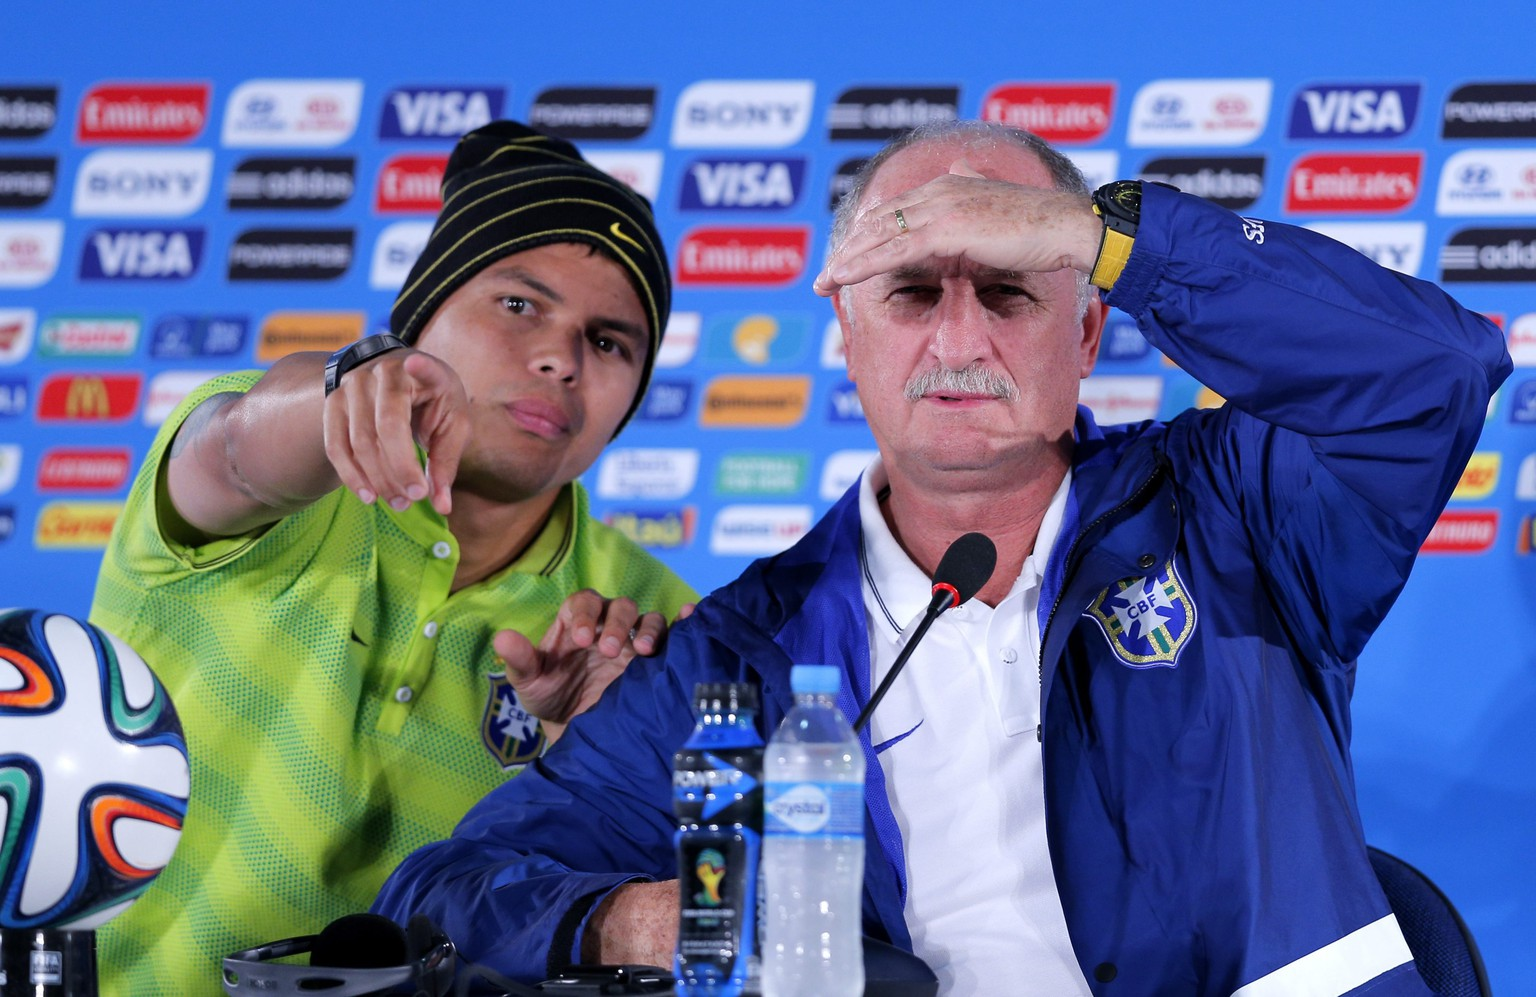 epa04311604 Brazil national soccer team head coach Luiz Felipe Scolari (R) and captain Thiago Silva (L) during a press conference at Estadio National in Brasilia, Brazil, 11 July 2014. Brazil will face The Netherlands on 12 July for the third place in the FIFA World Cup Brazil 2014 match at National Stadium in Brasilia.  EPA/ROBERT GHEMENT